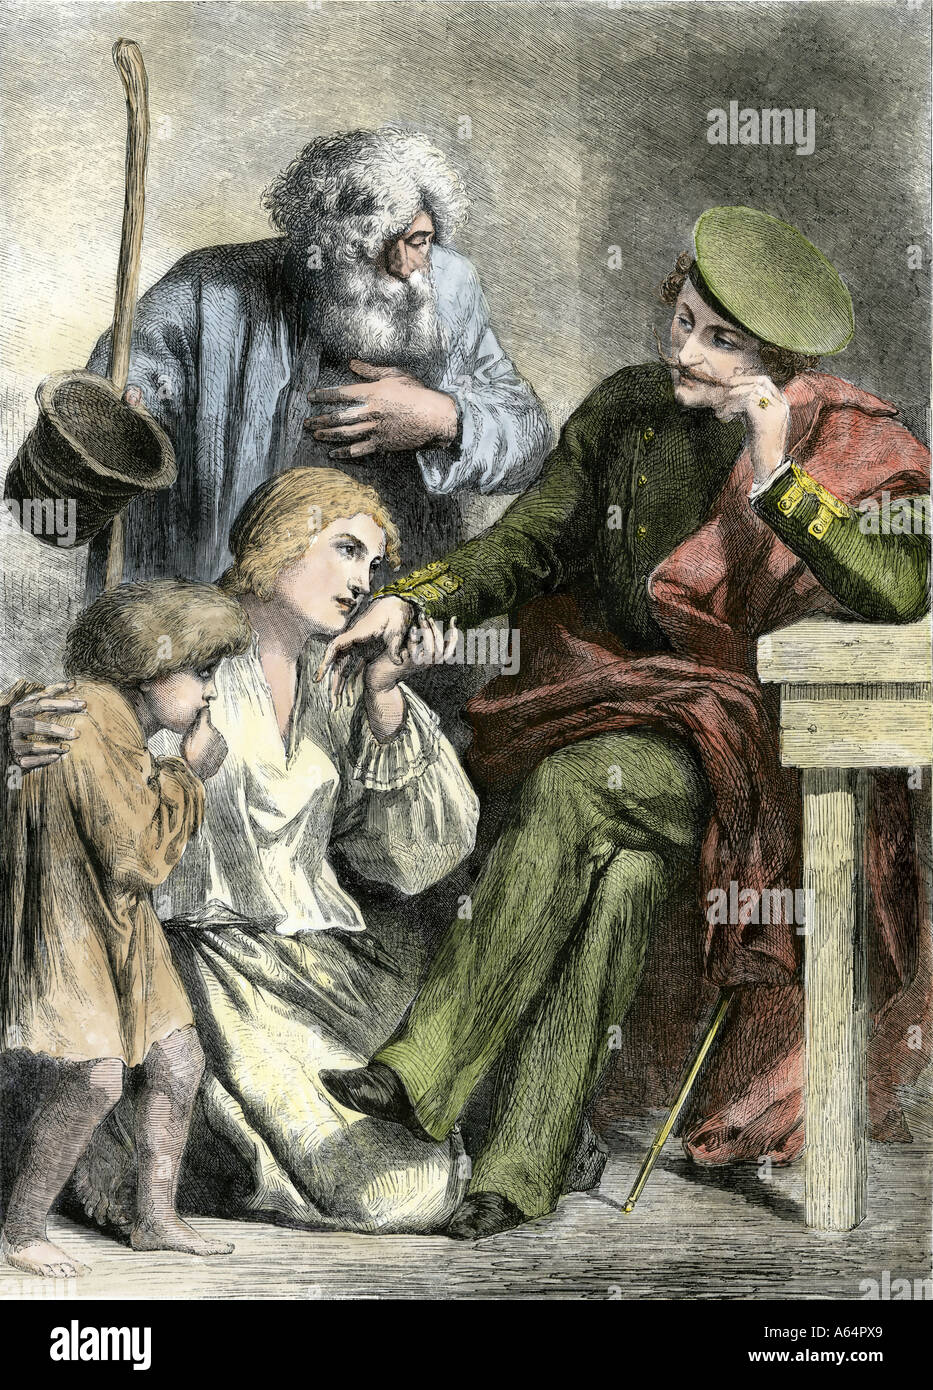 Family of Russian serfs greeting a noble landowner 1800s. Hand-colored woodcut Stock Photo